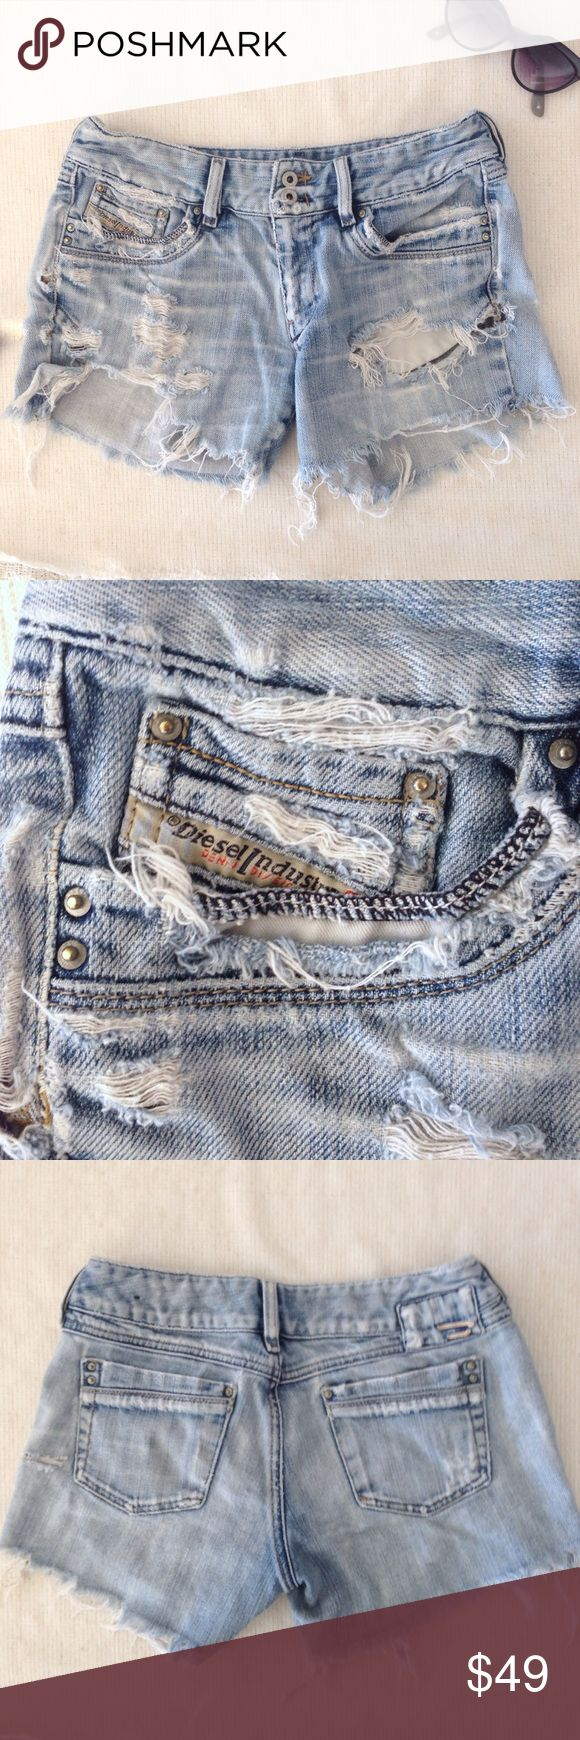 Trend!✨Diesel Super Distressed Cut Off Jean Shorts THE BEST CUT OFFS EVER! So amazing, rare & unique. 100% authentic Diesel made in Italy. Very soft, worn & have the perfect amount of distressed look. Amazing find! Offers are welcome! 🎀🌈🎀 7even Citizens Paige Vintage Levi's Hudson Diesel Shorts Jean Shorts